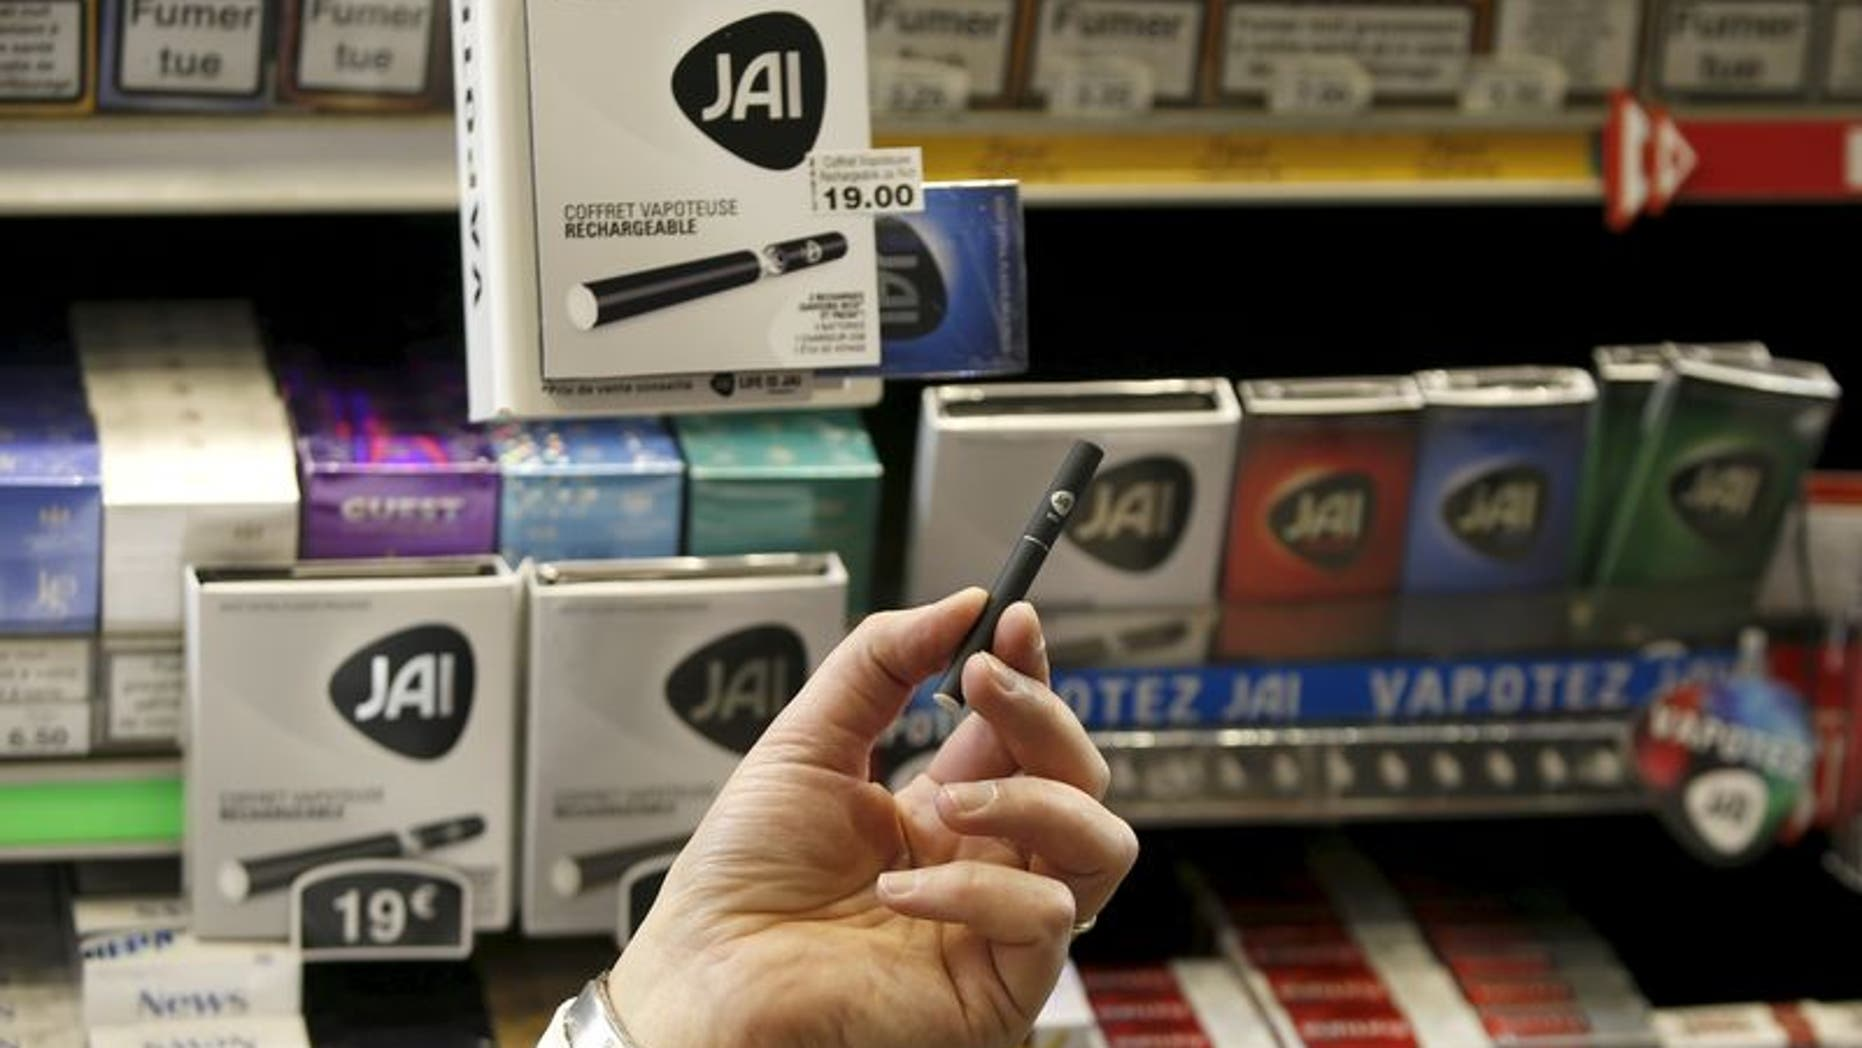 E-cigarette Jai is displayed in a tobacco shop in Paris in this February 9, 2015 file photo. REUTERS/Charles Platiau/Files